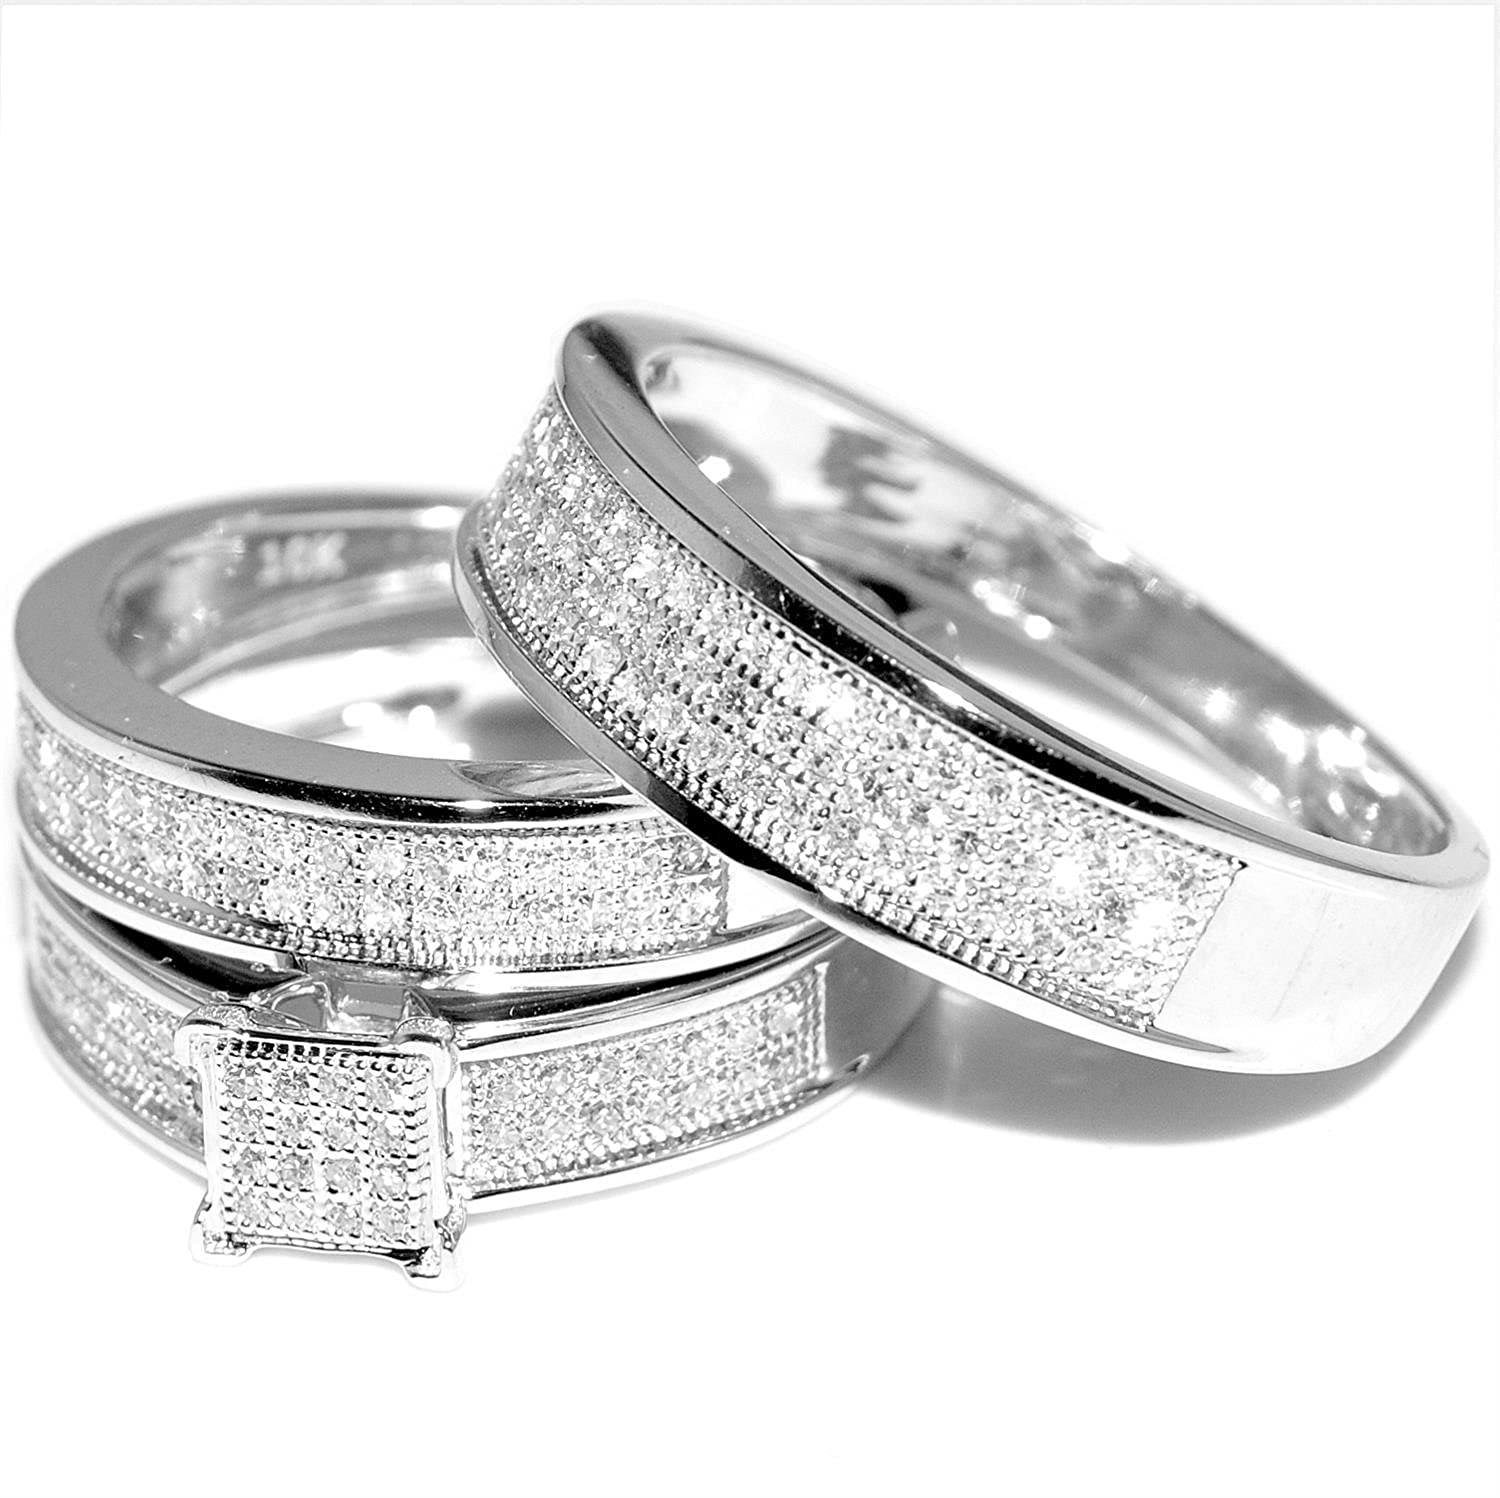 Exceptionnel White Gold Trio Wedding Set Mens Womens Wedding Rings Matching 0.40cttw  Diamond|Amazon.com